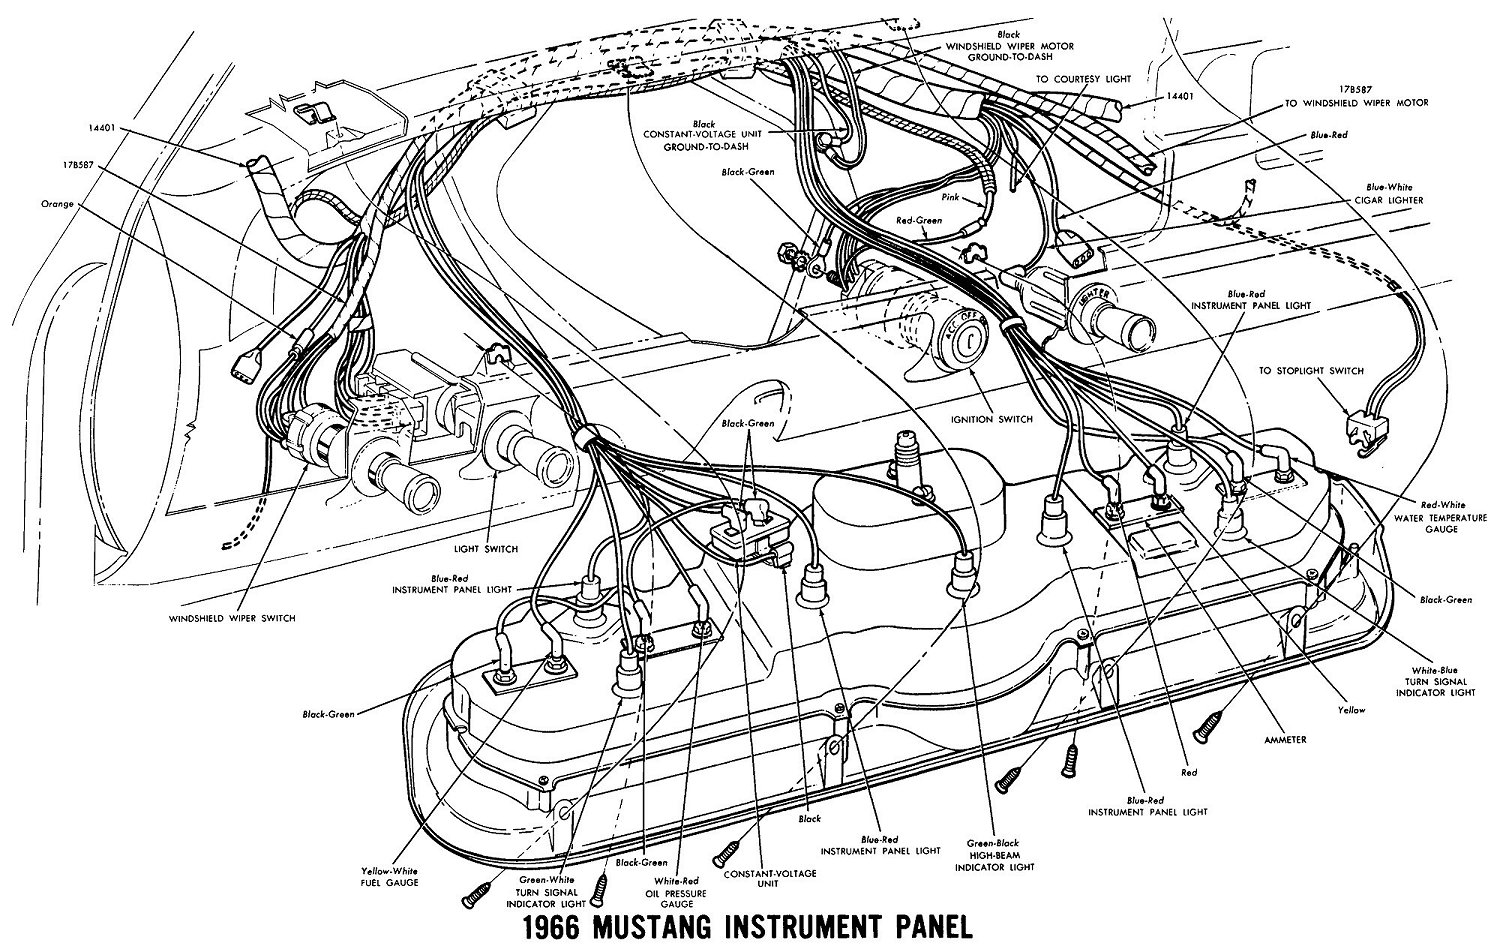 66InstrumentWiring lelu's 66 mustang 1966 mustang wiring diagrams 1966 mustang wiring diagrams at creativeand.co